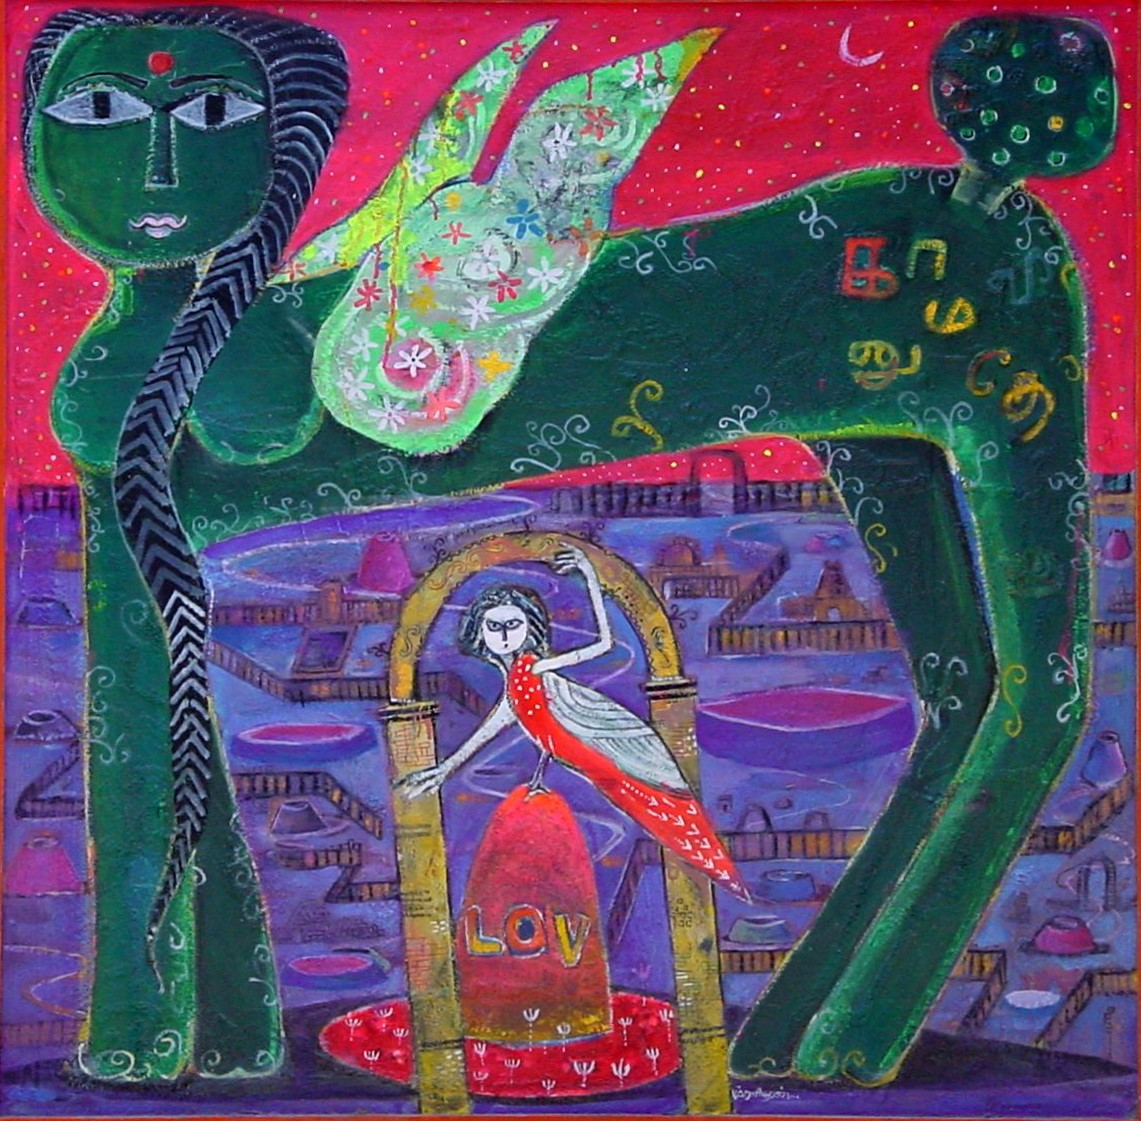 kamadhenu cow, Green Kamadhenu by K.Muraldharan 2010 acrylic on canvas